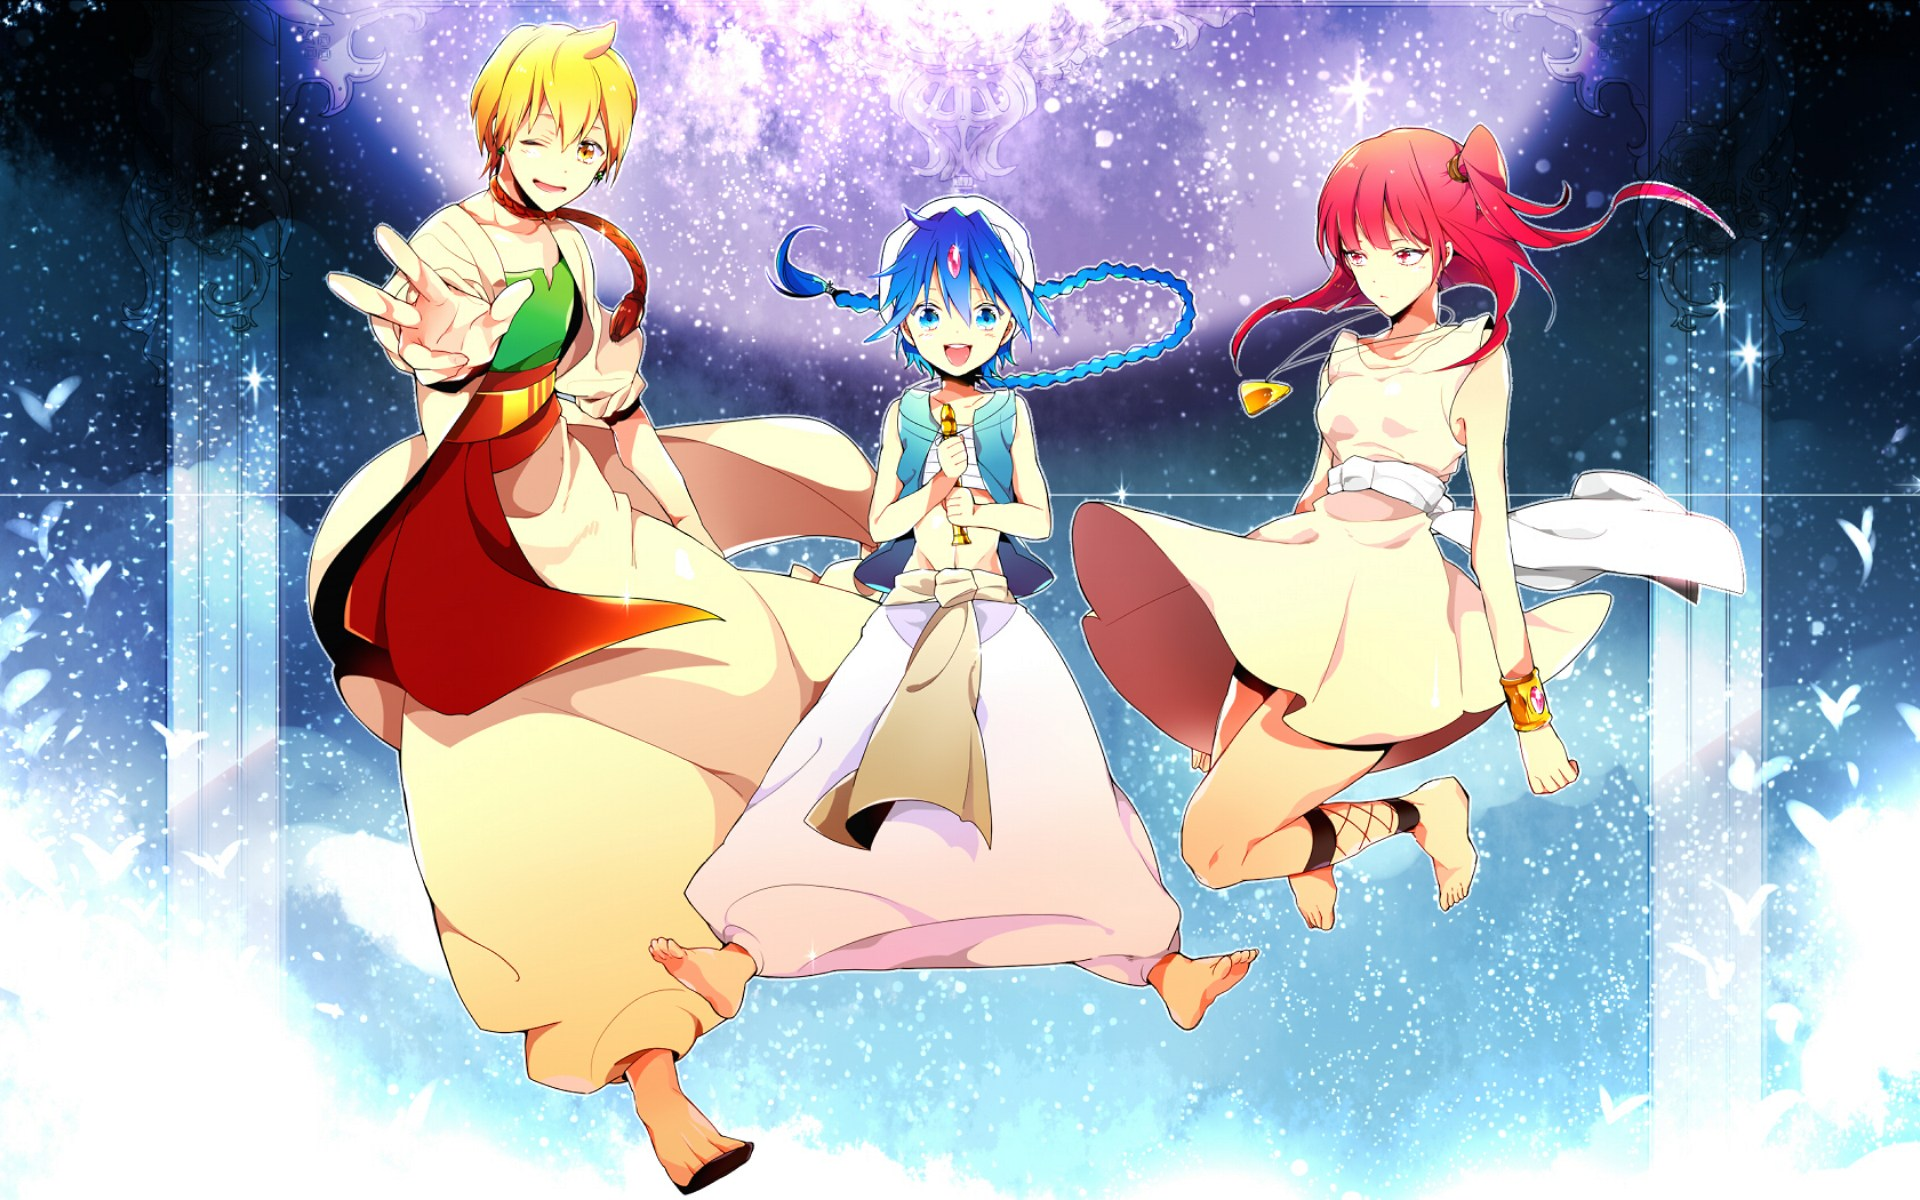 magi_labyrinth_03